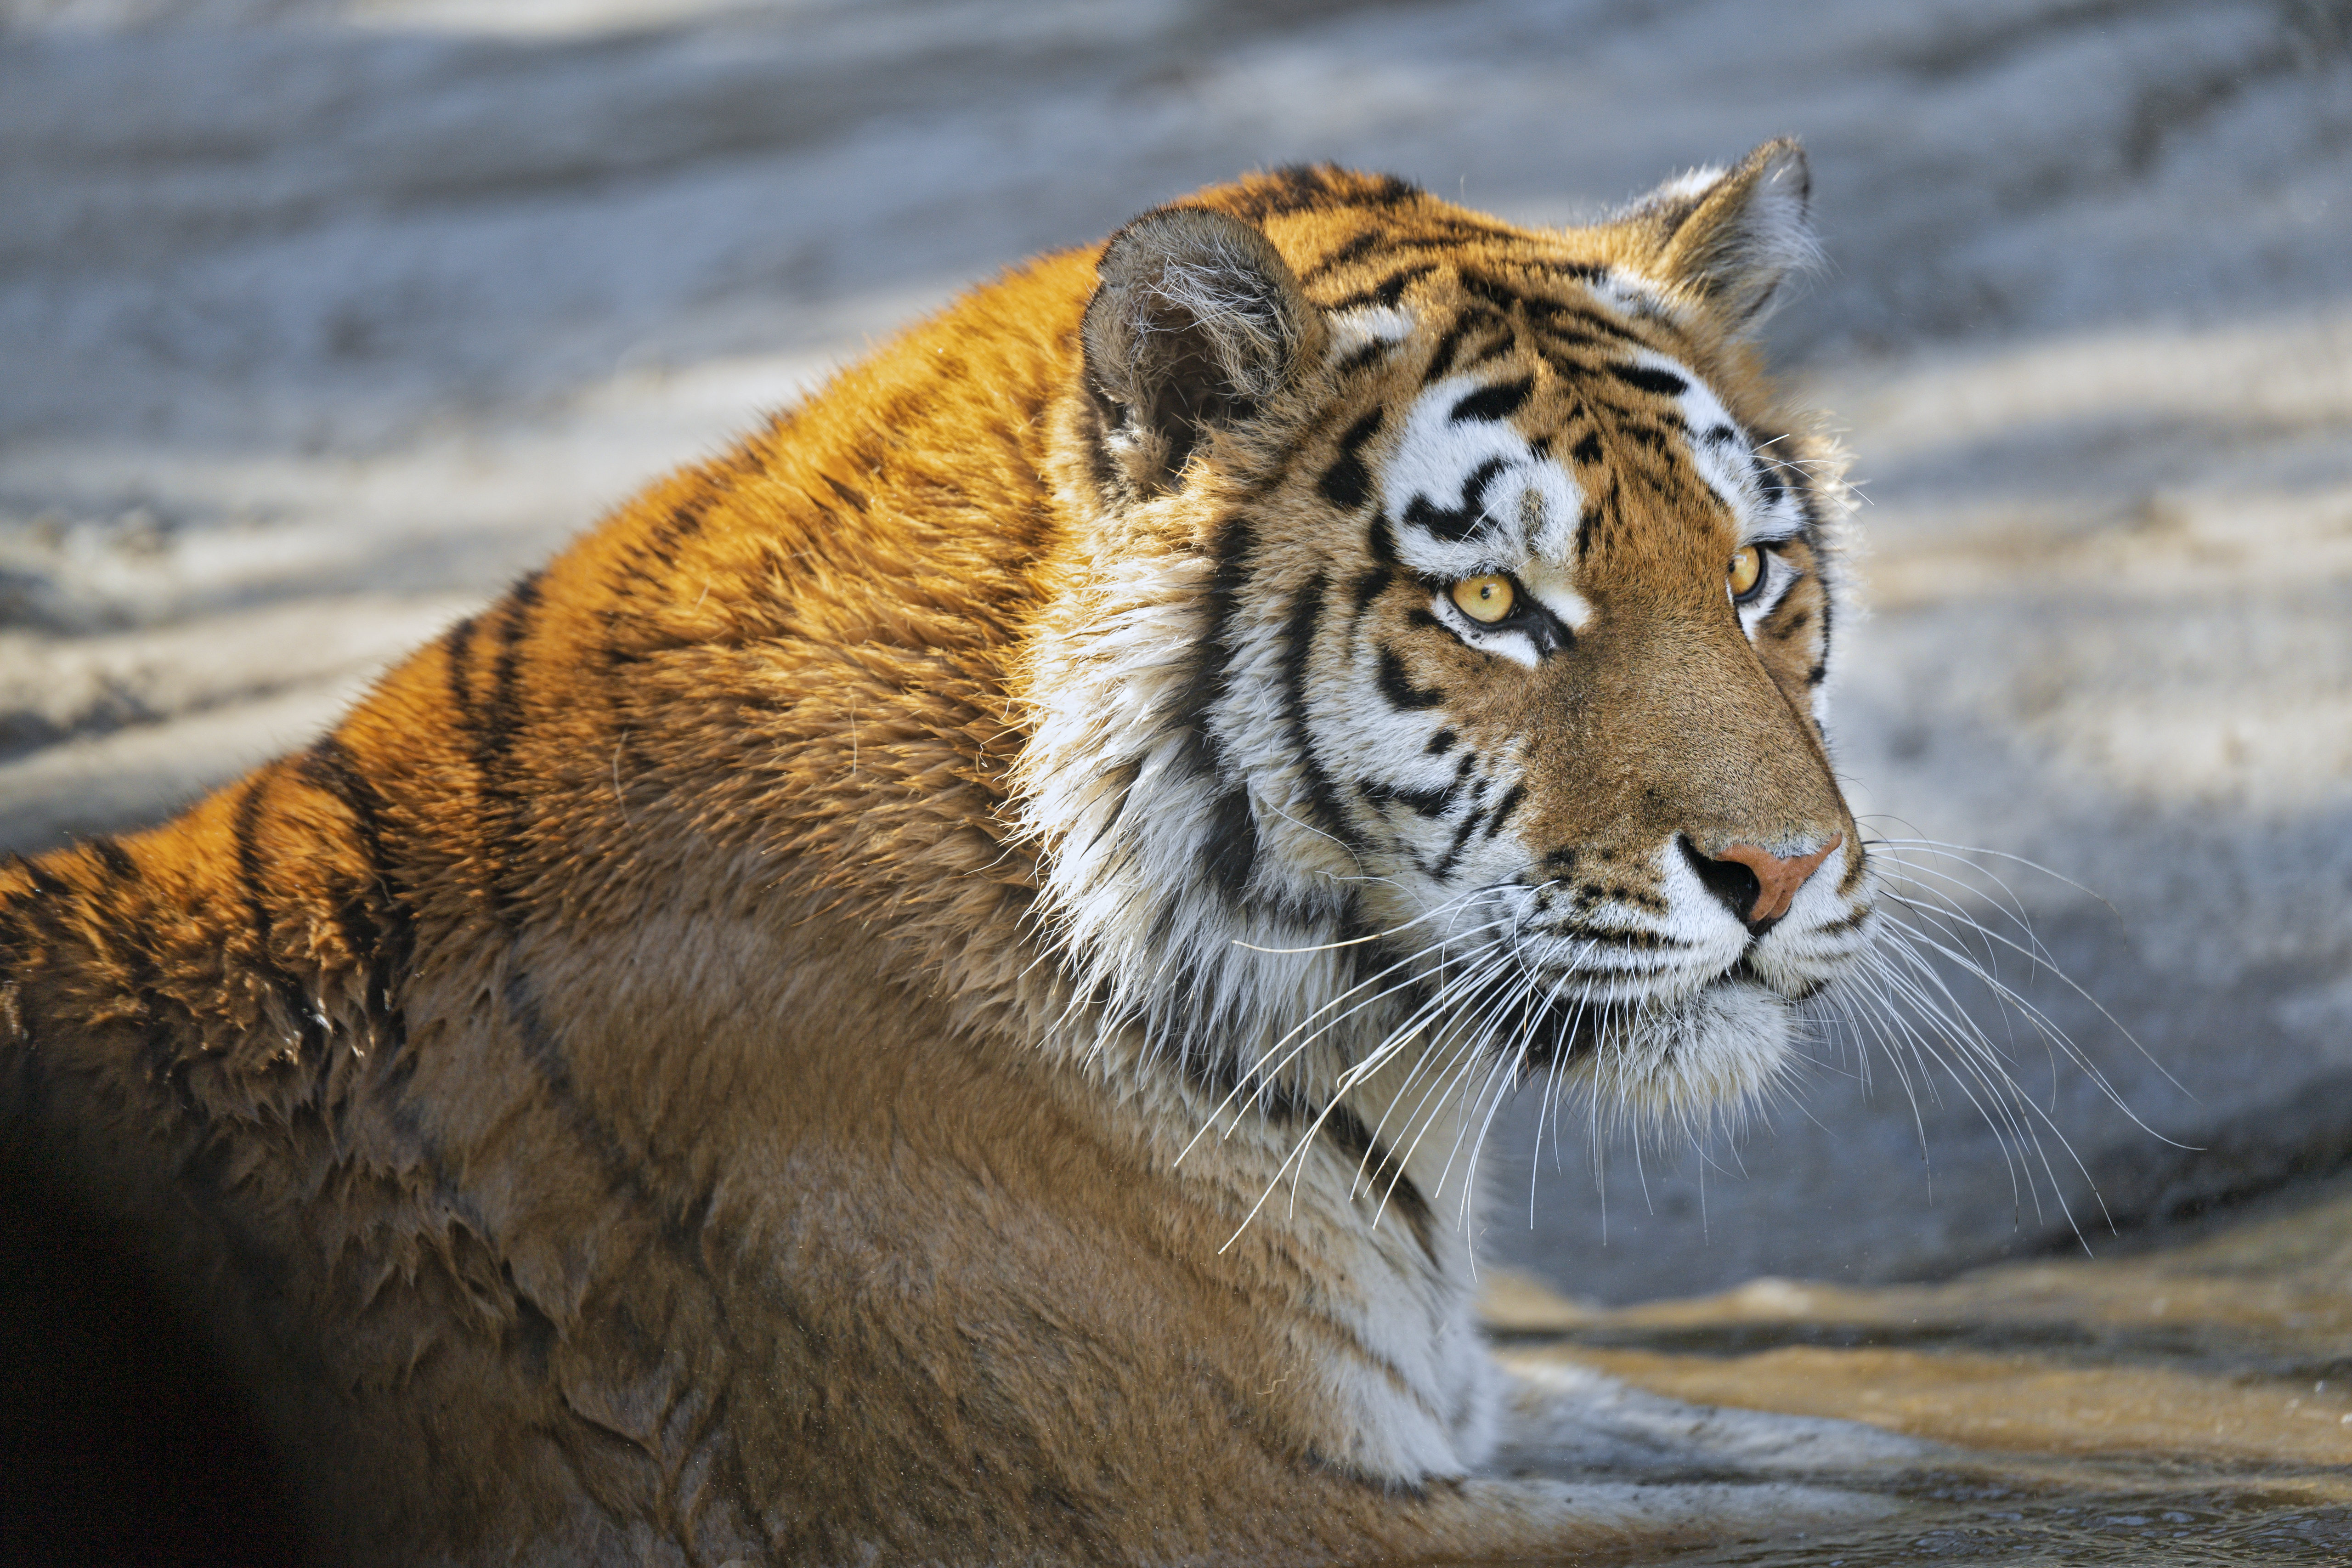 96756 download wallpaper Animals, Tiger, Predator, Sight, Opinion, Big Cat, Muzzle screensavers and pictures for free